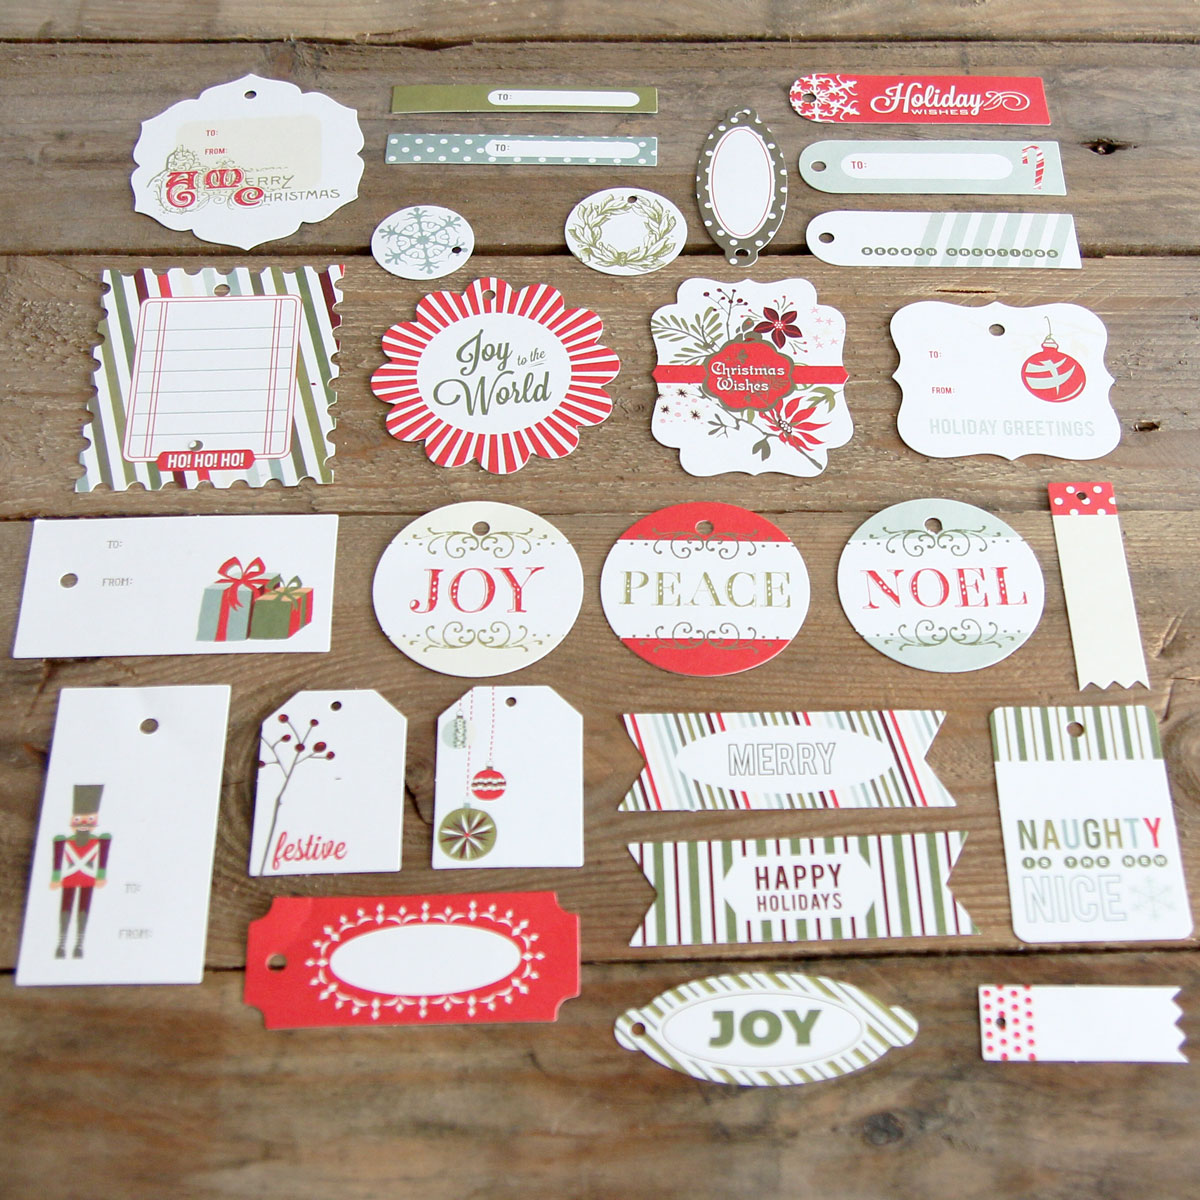 Mr_wonderful_shop_decoracion_navidad_2014_0100